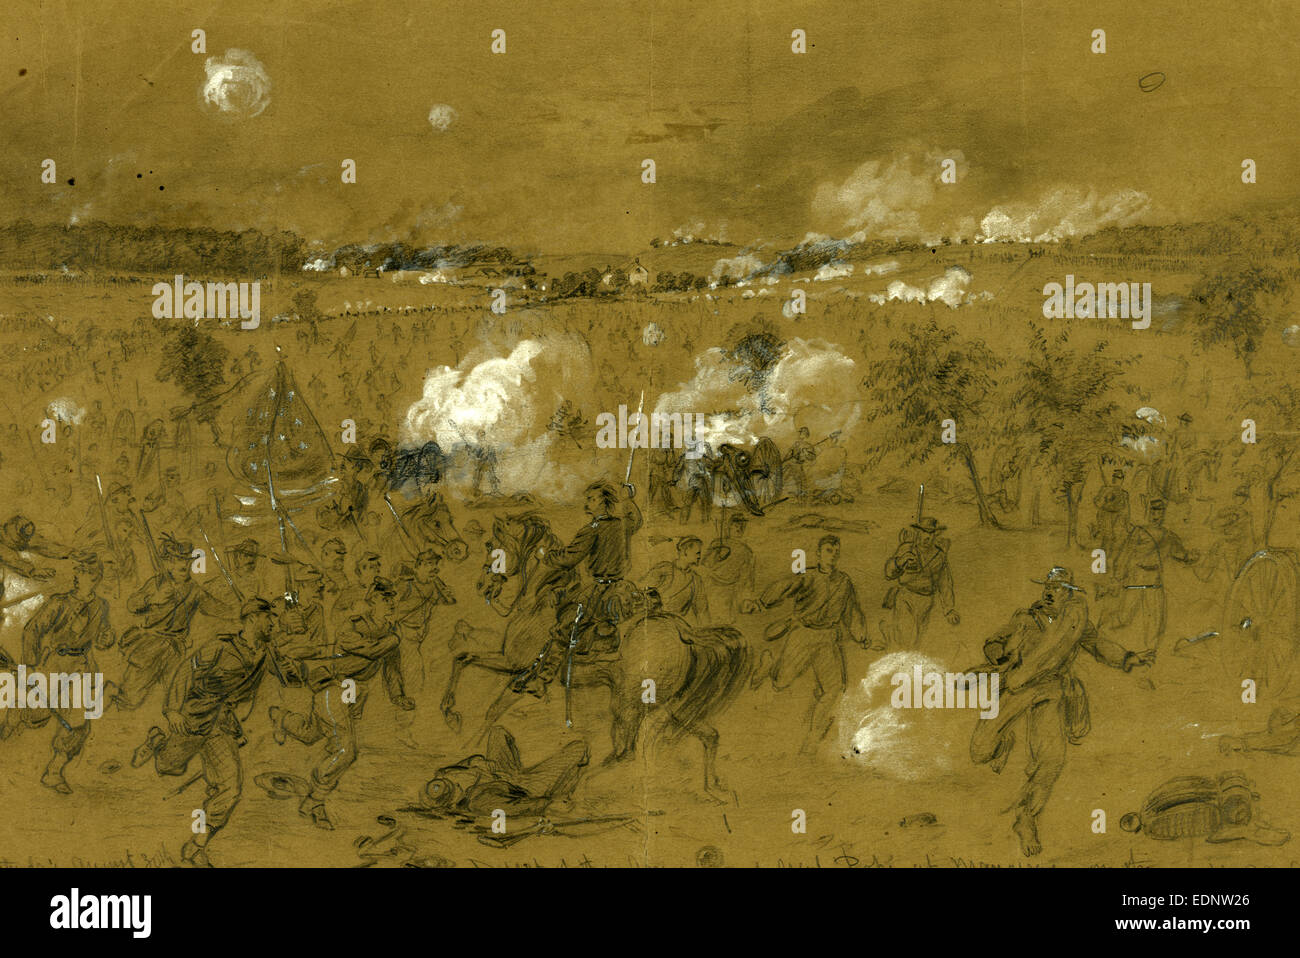 Defeat of the Army of Genl. Pope at Manassas on the Old Bull run battleground, drawing, 1862-1865, by Alfred R Waud, - Stock Image